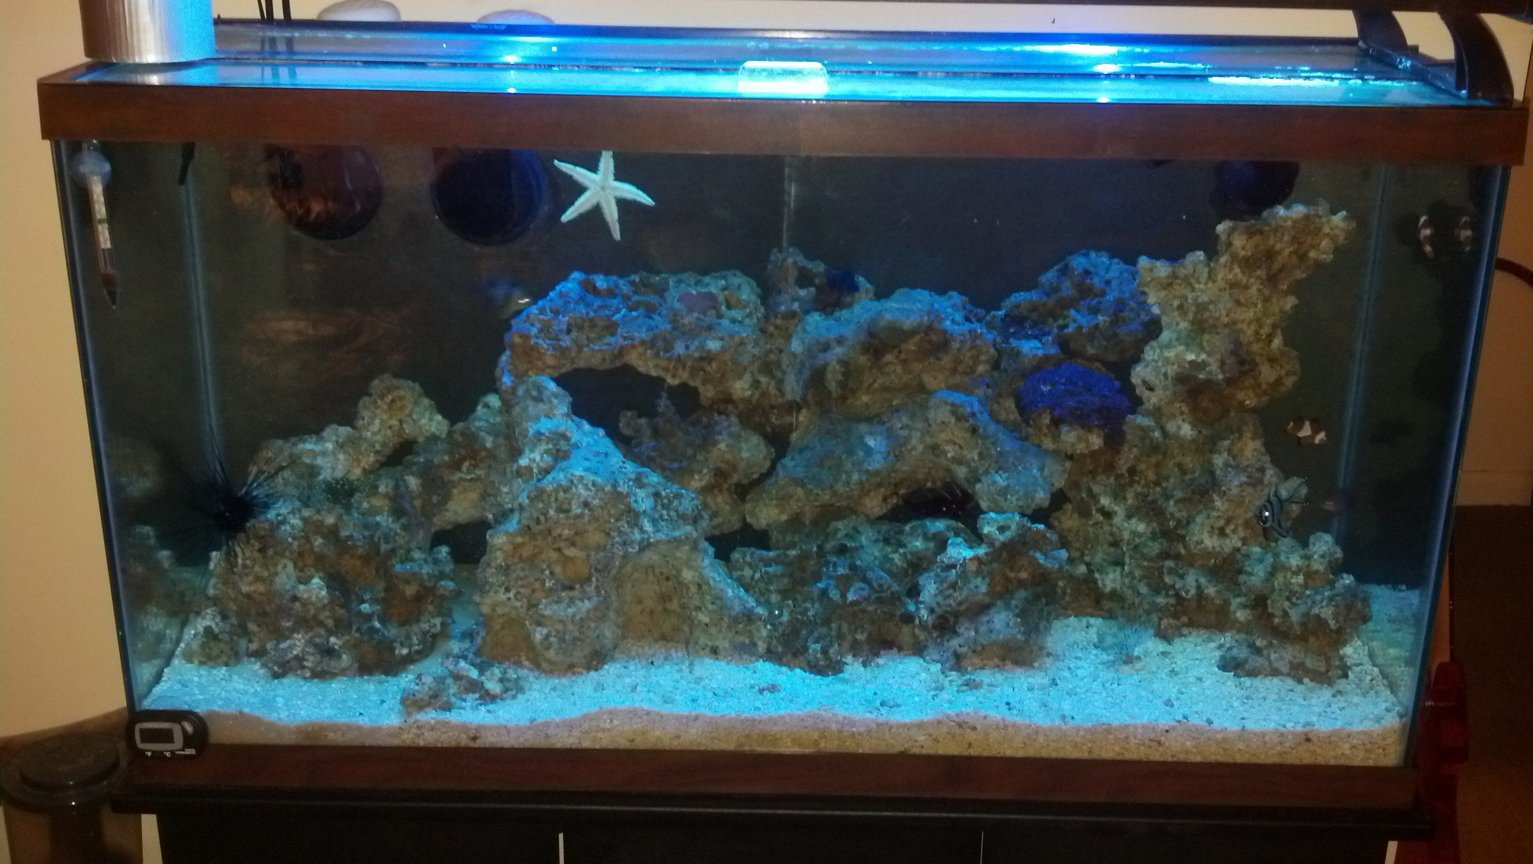 40 gallons saltwater fish tank (mostly fish, little/no live coral) - tank